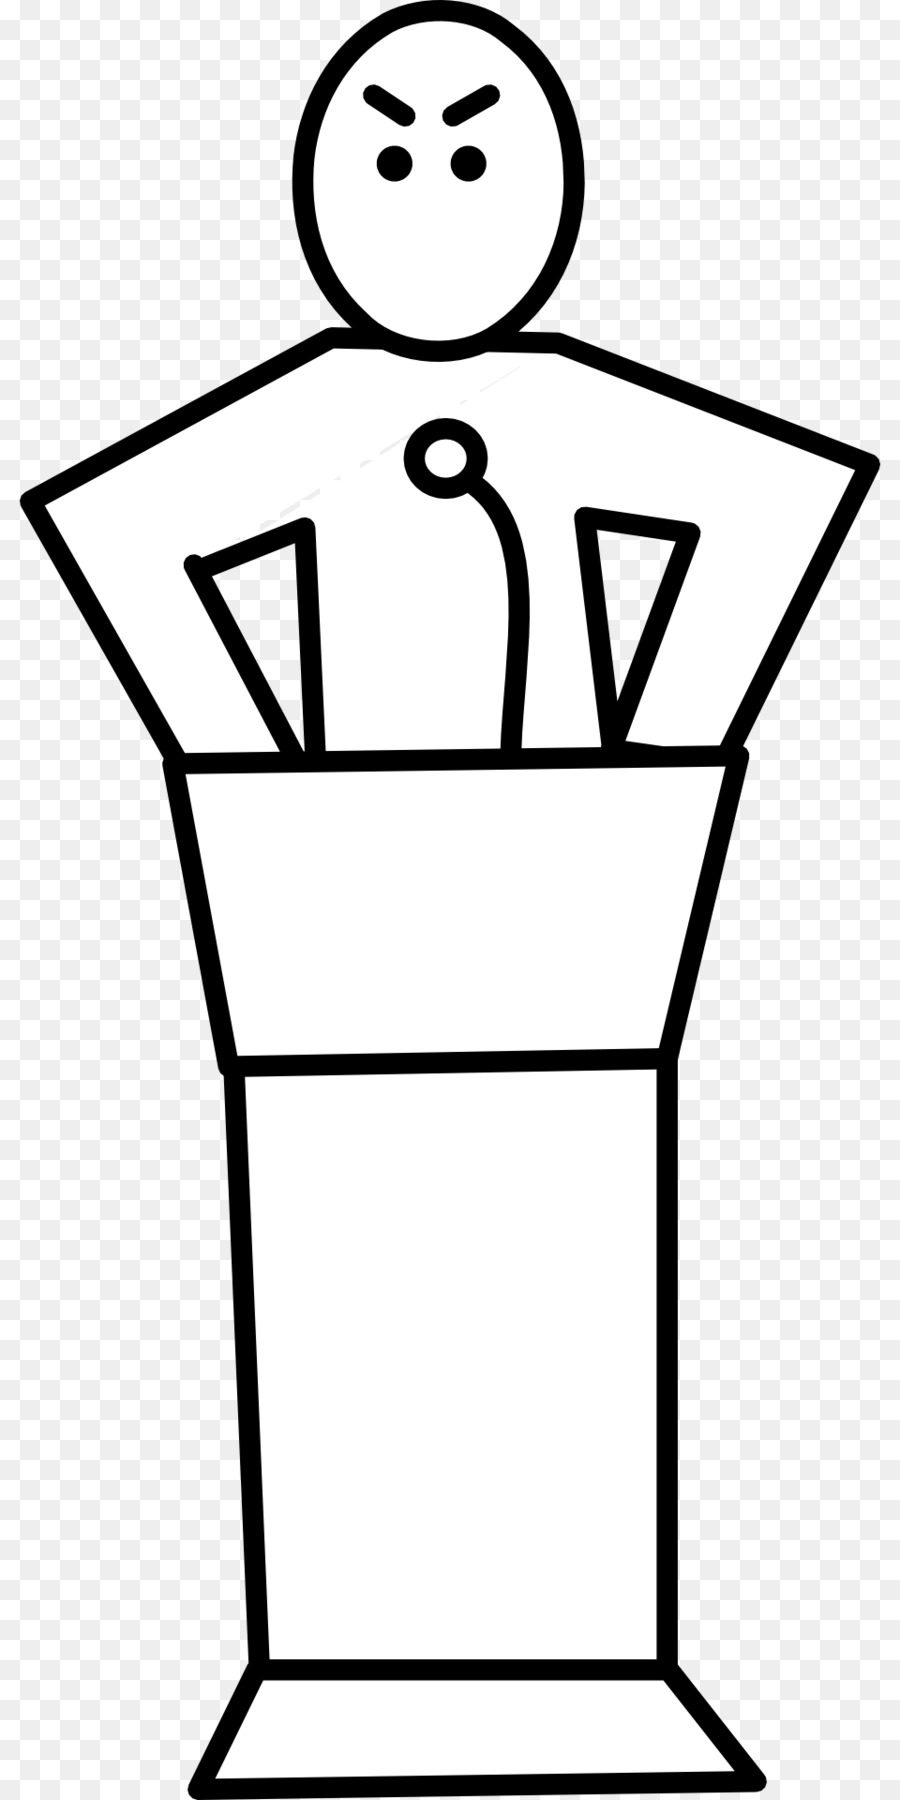 White Background clipart - Podium, Rectangle, transparent ... svg free download